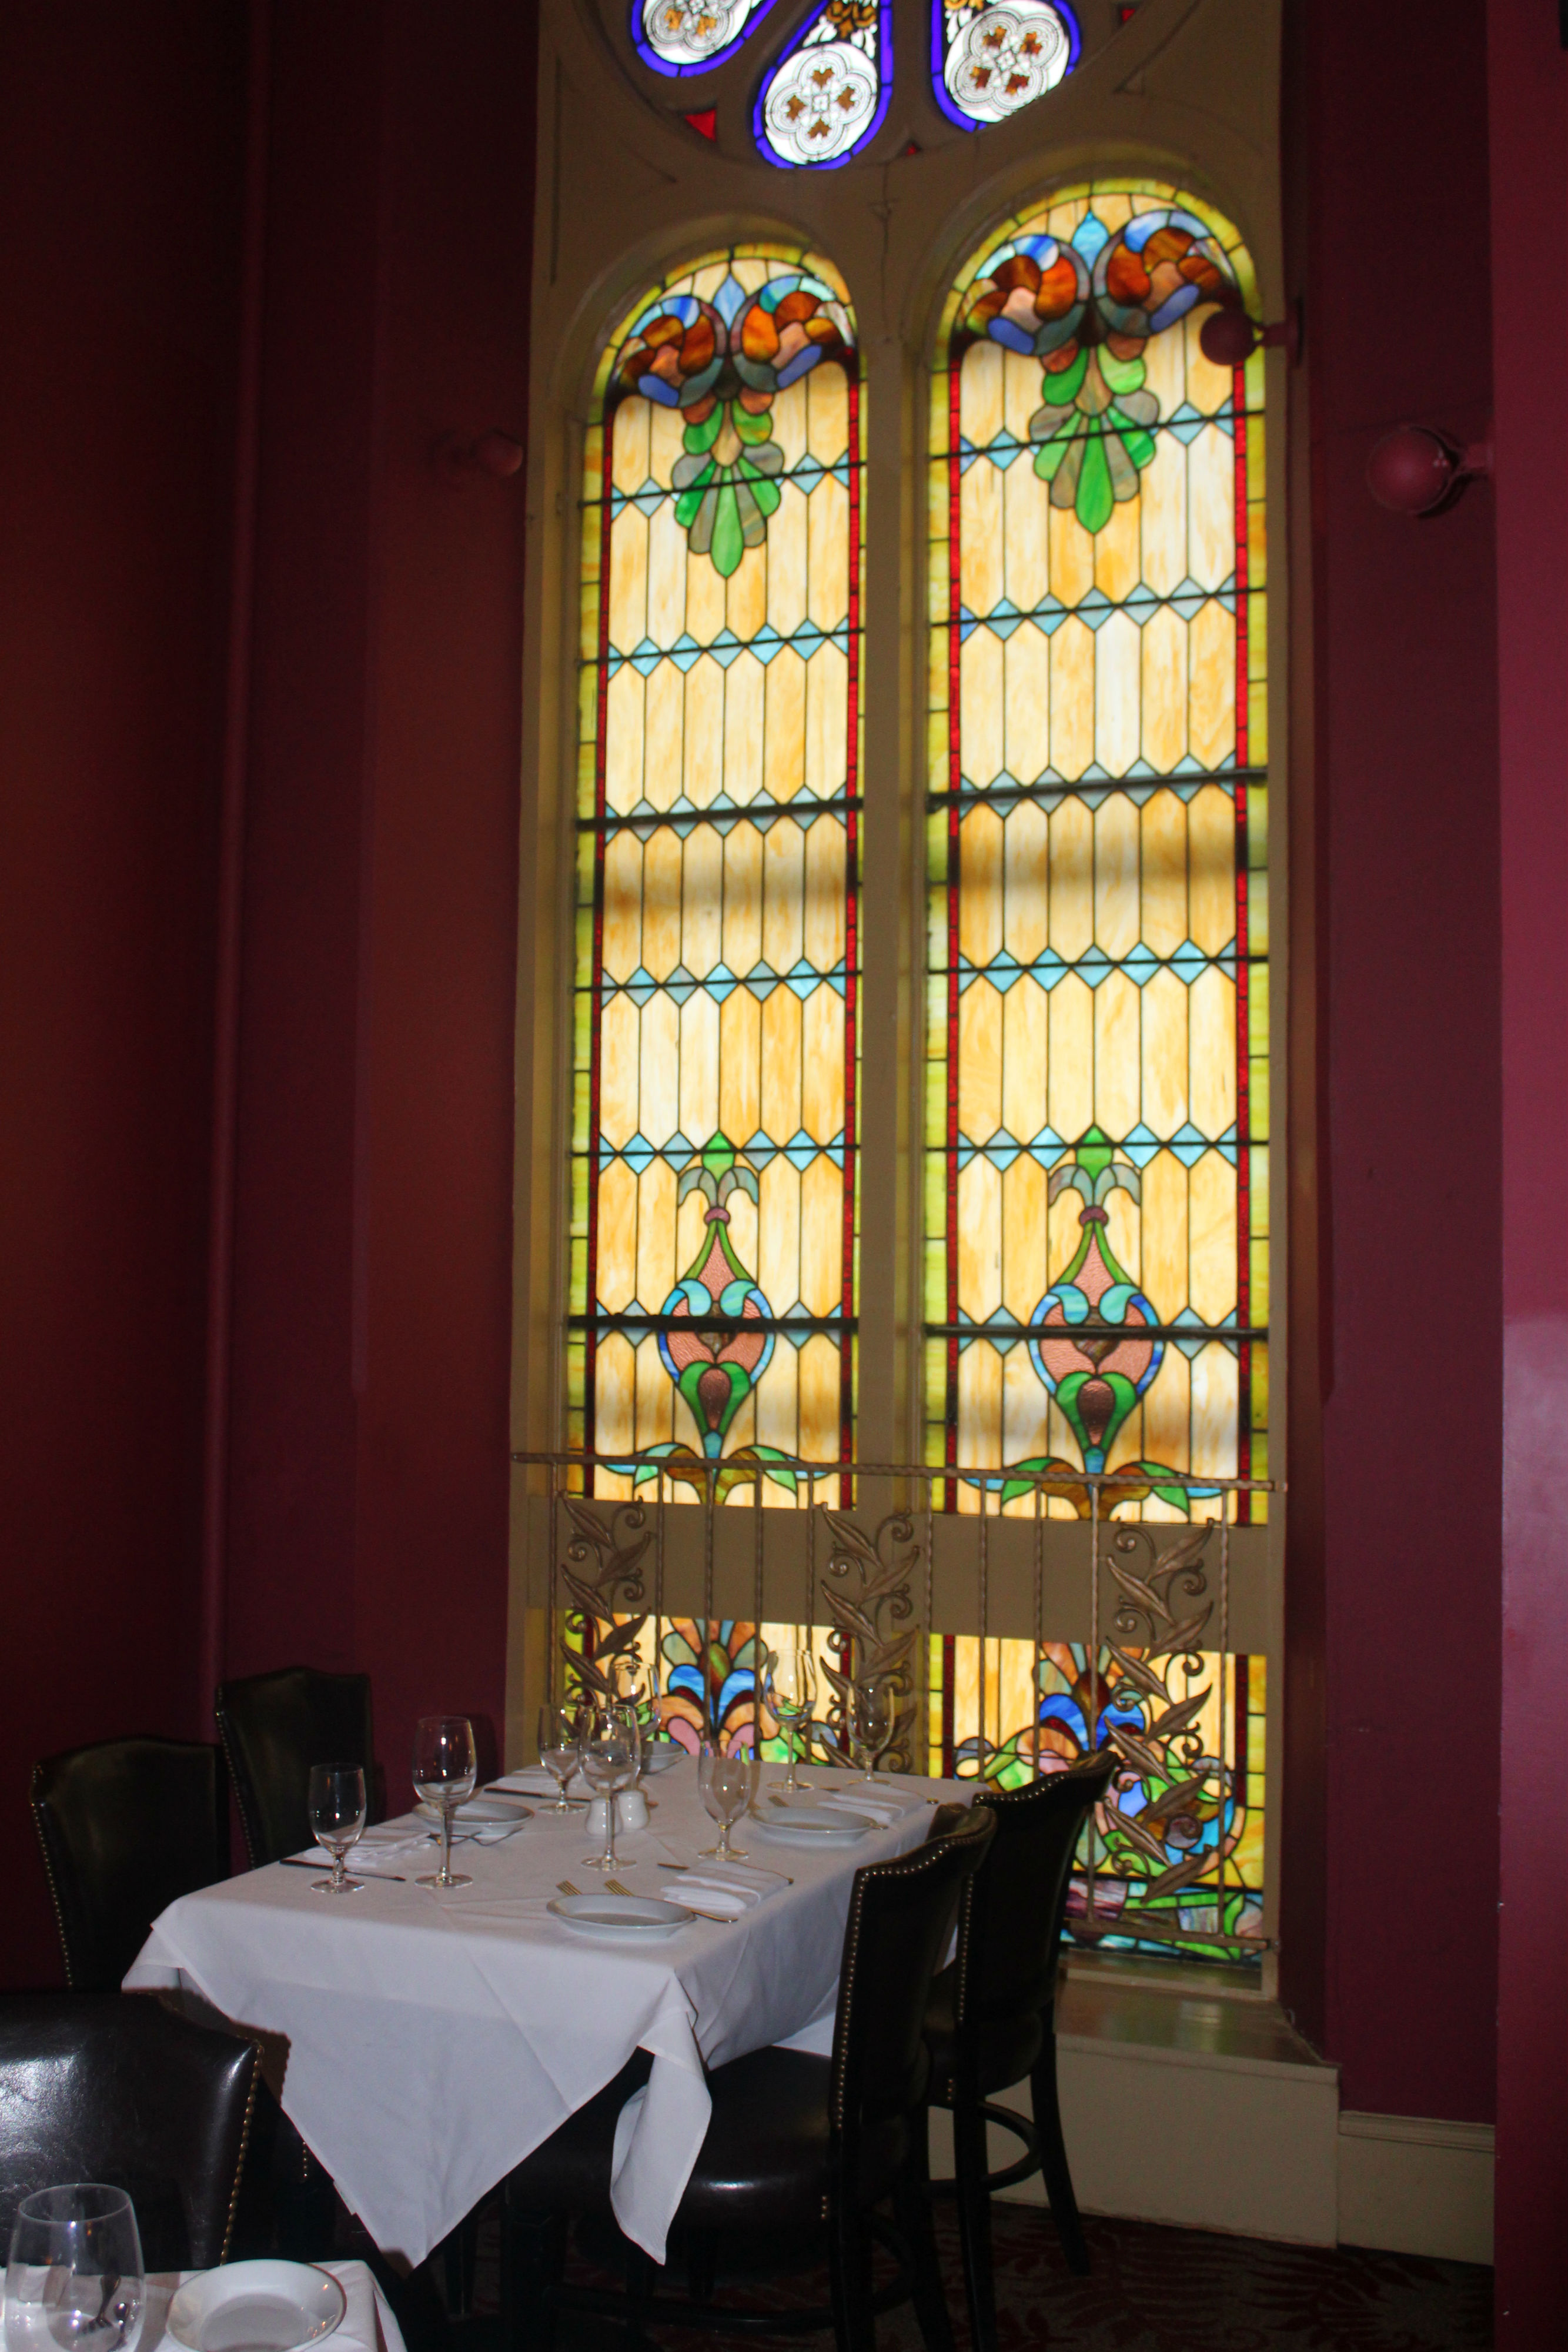 IMarsha Brown's is a NOLA-inspired restaurant located in a renovated church on Main Street. The architecture and original accents of the church remain, including the stained glass windows. Marsha Brown's is one of the most-well known destinations in New Hope.{ }(Image: Julie Gallagher)